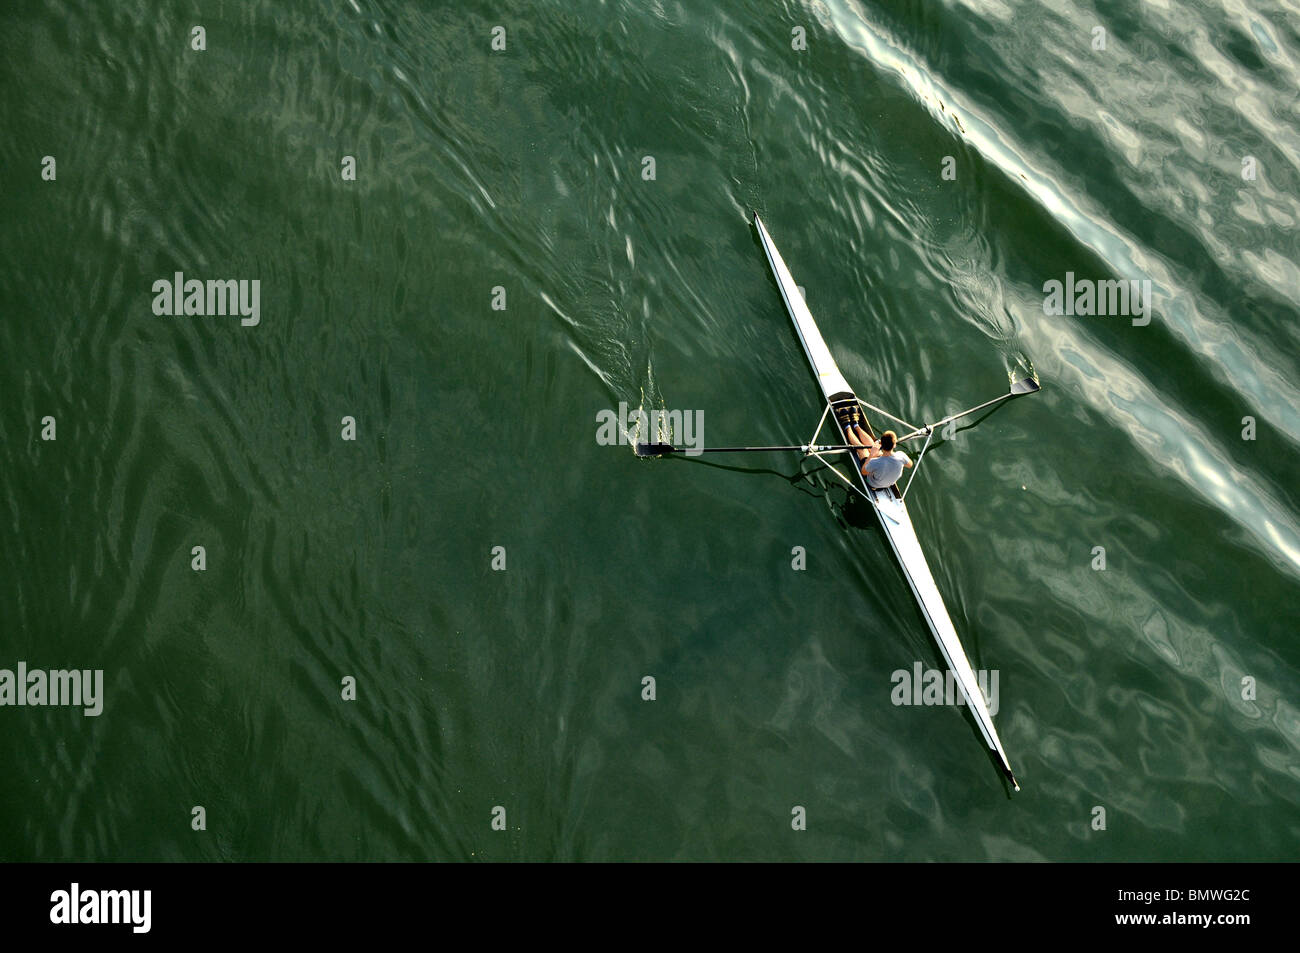 image of a young man rowing in kayak down the river - Stock Image